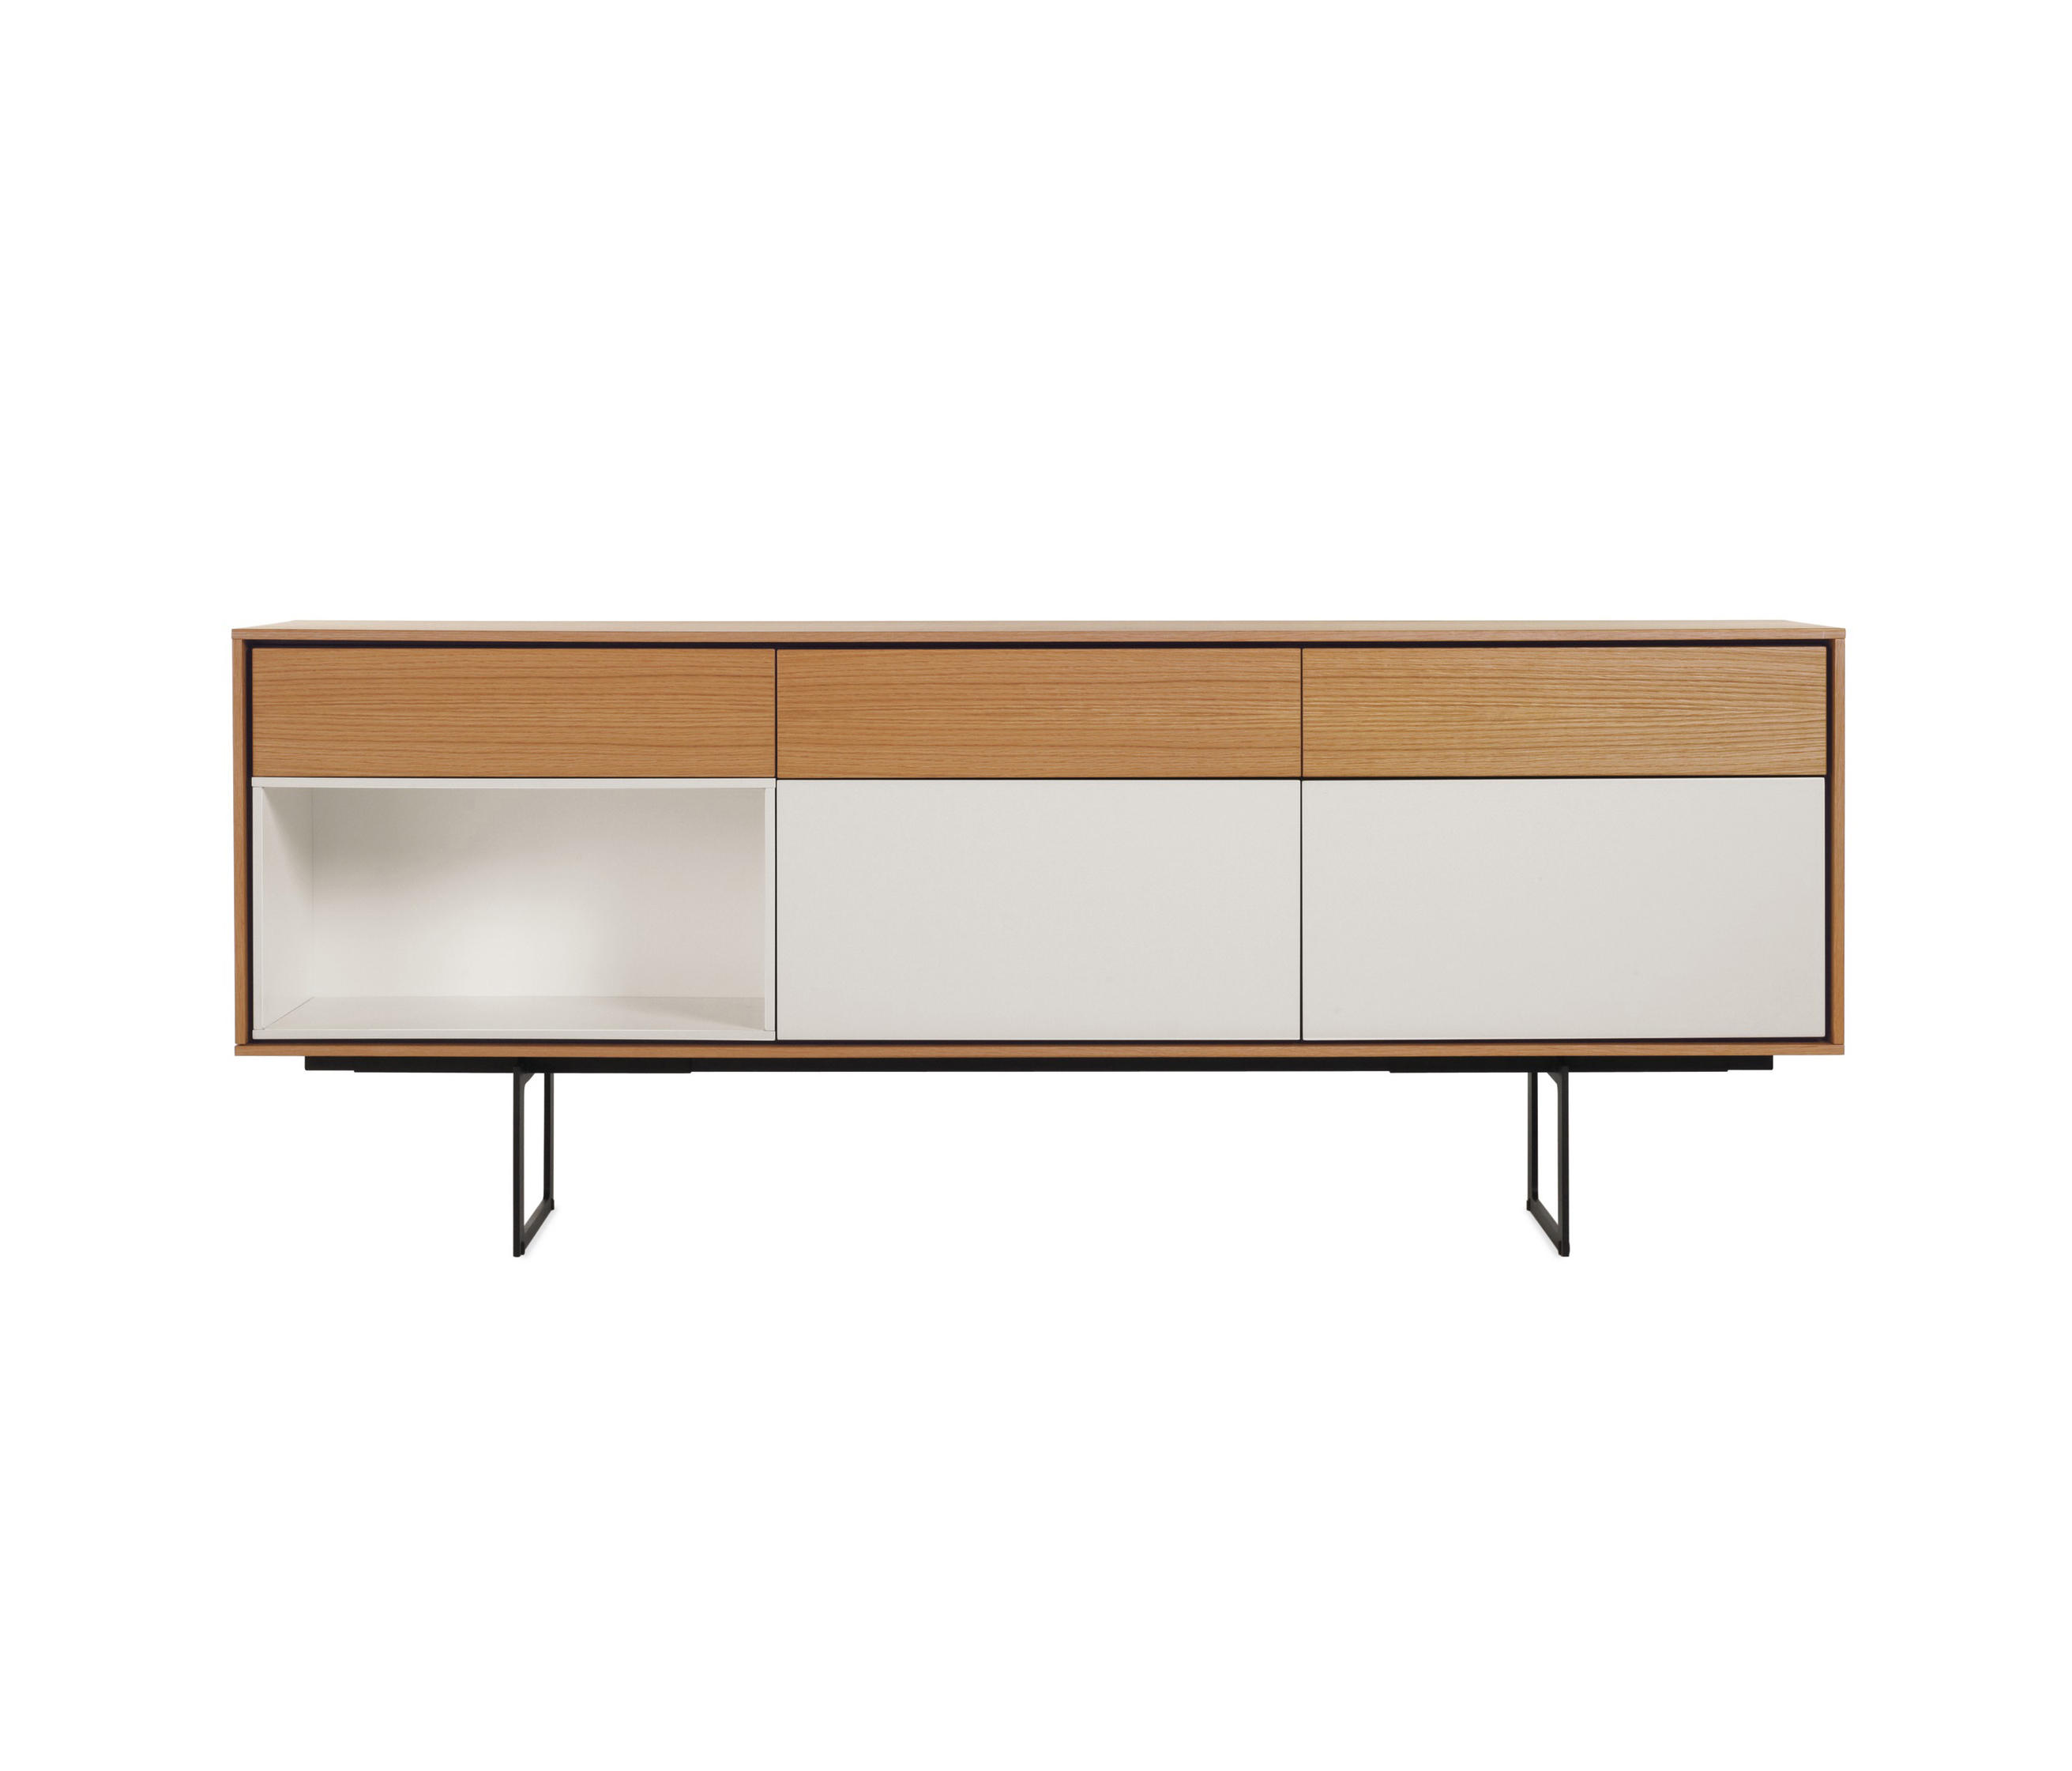 Marvellous Aura Credenza By Design Within Reach Sideboards Aura Credenza Sideboards From Design Within Reach Architonic Industrial By Design Bed Legs Industrialbydesignco houzz-03 Industrial By Design